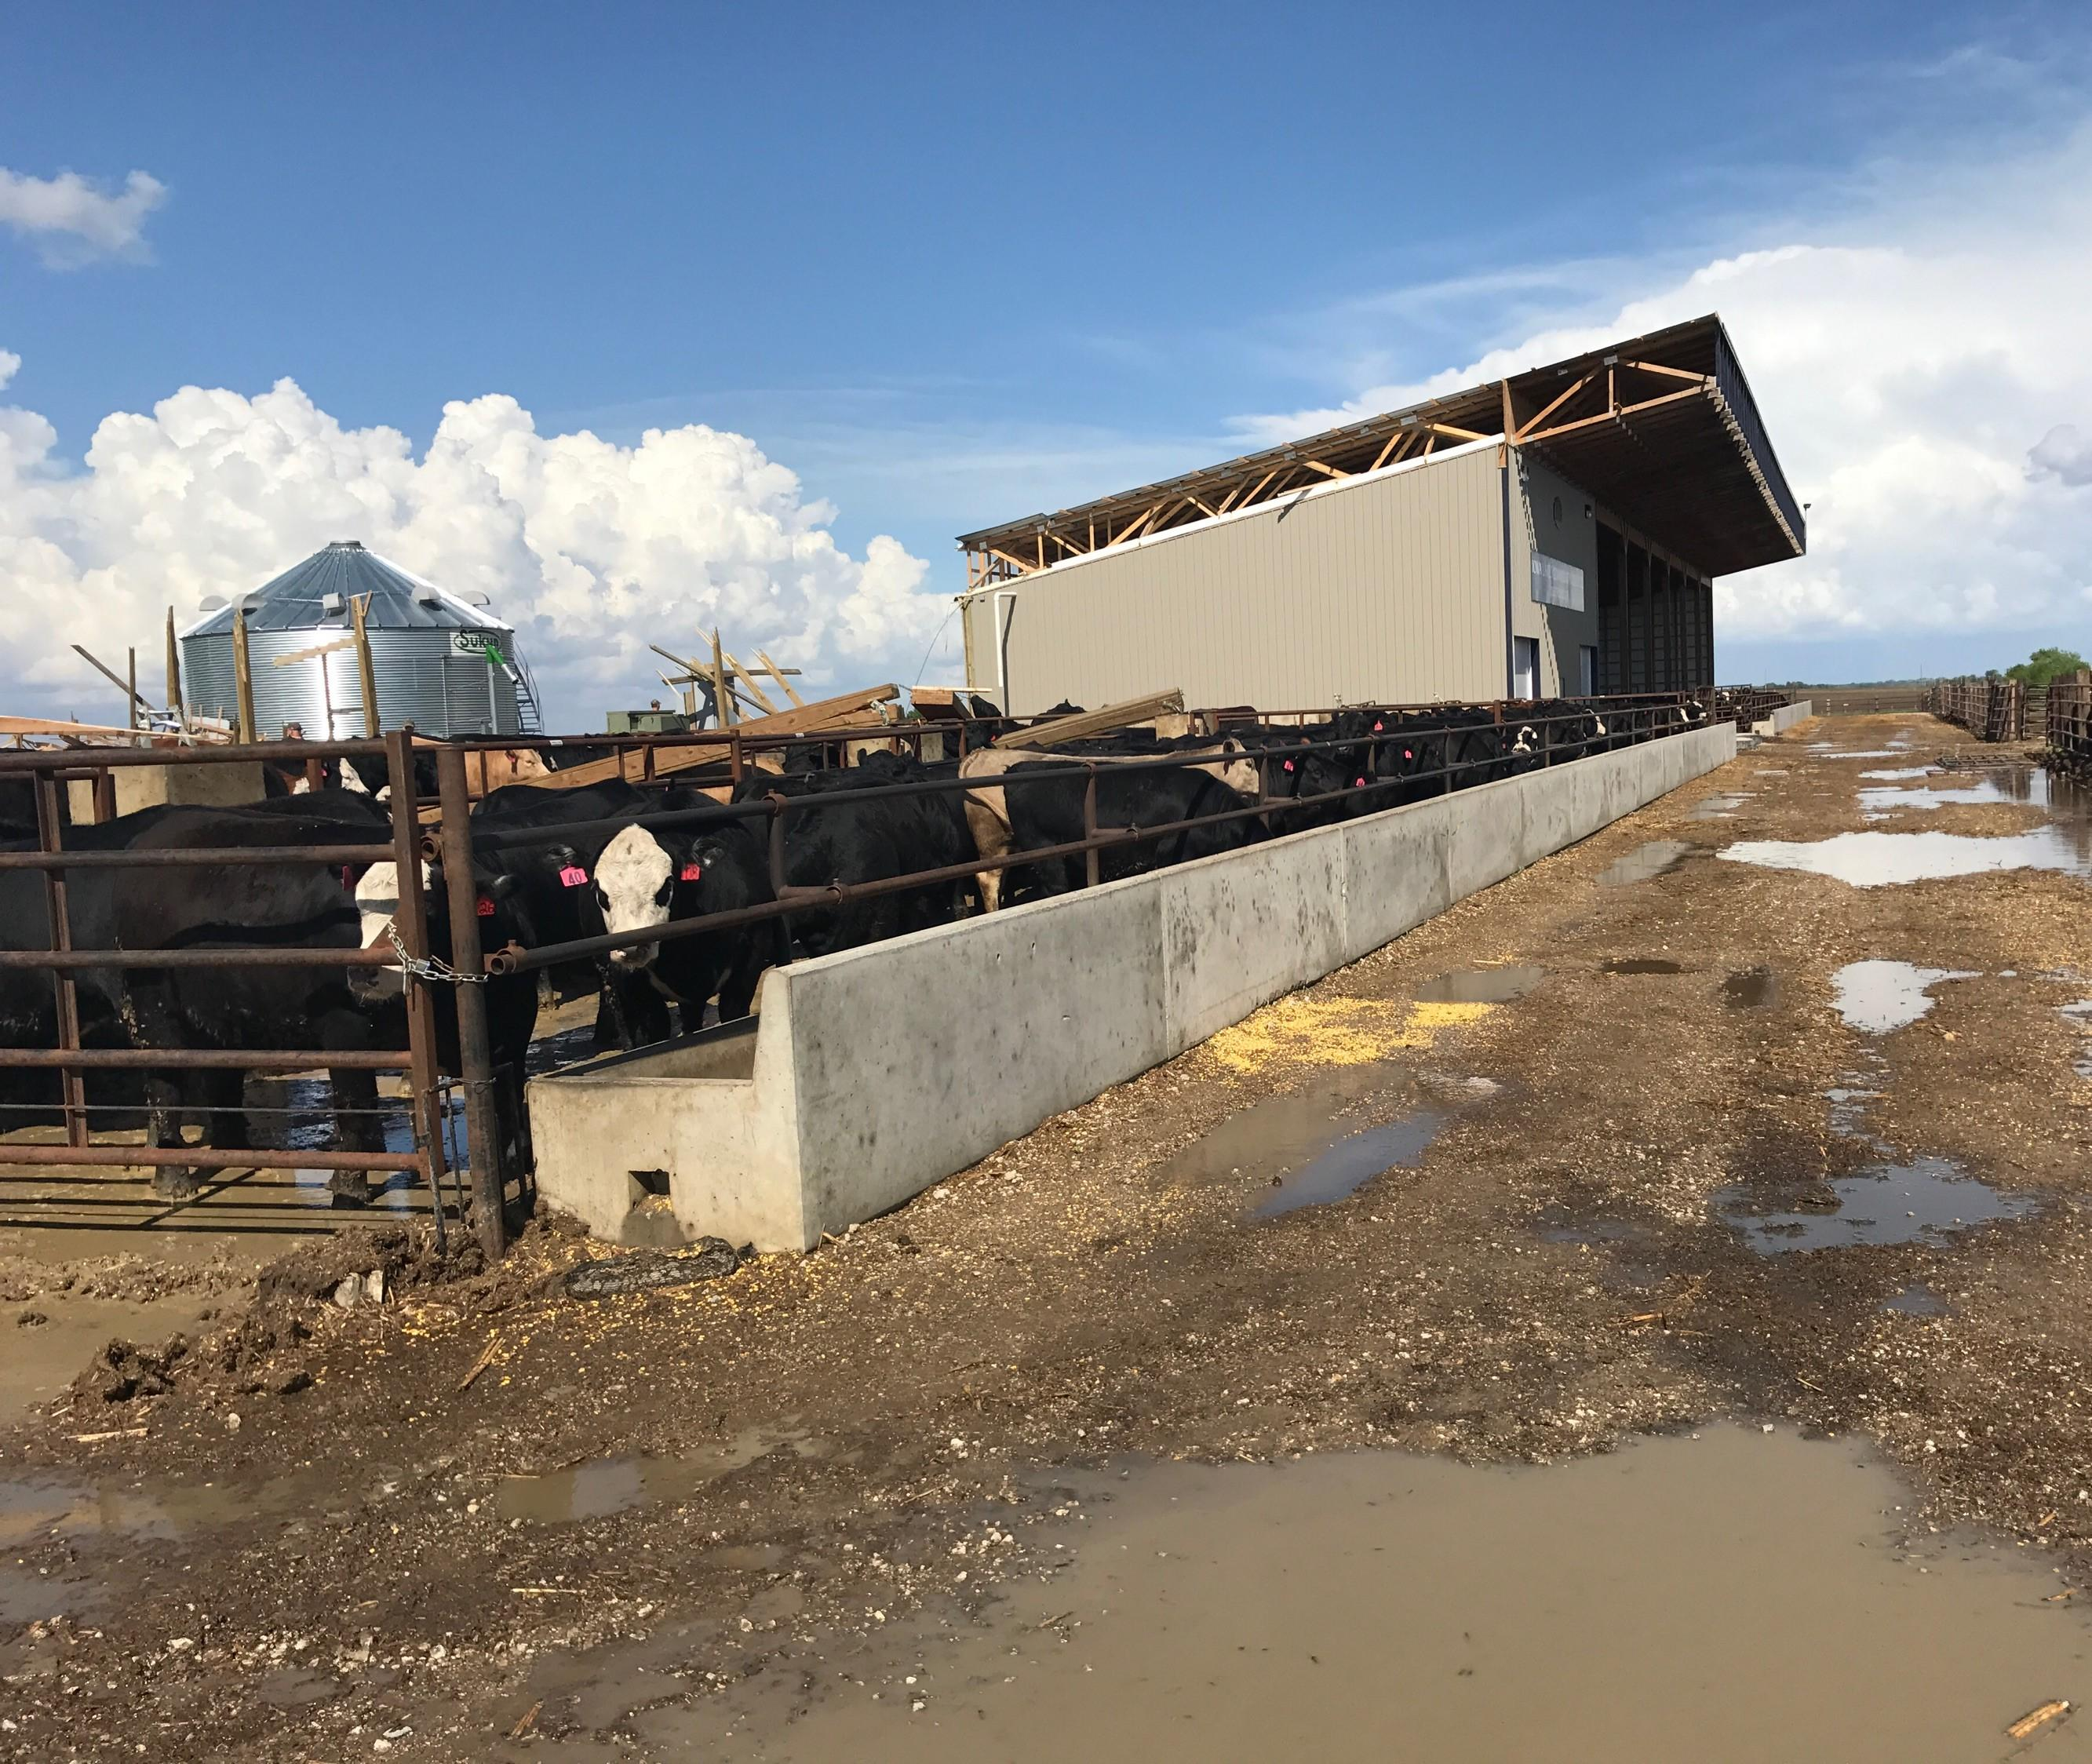 High winds blew through Palo Alto County and caused damage to a portion of the Beef Technology facility at the college farm laboratory west of Emmetsburg.